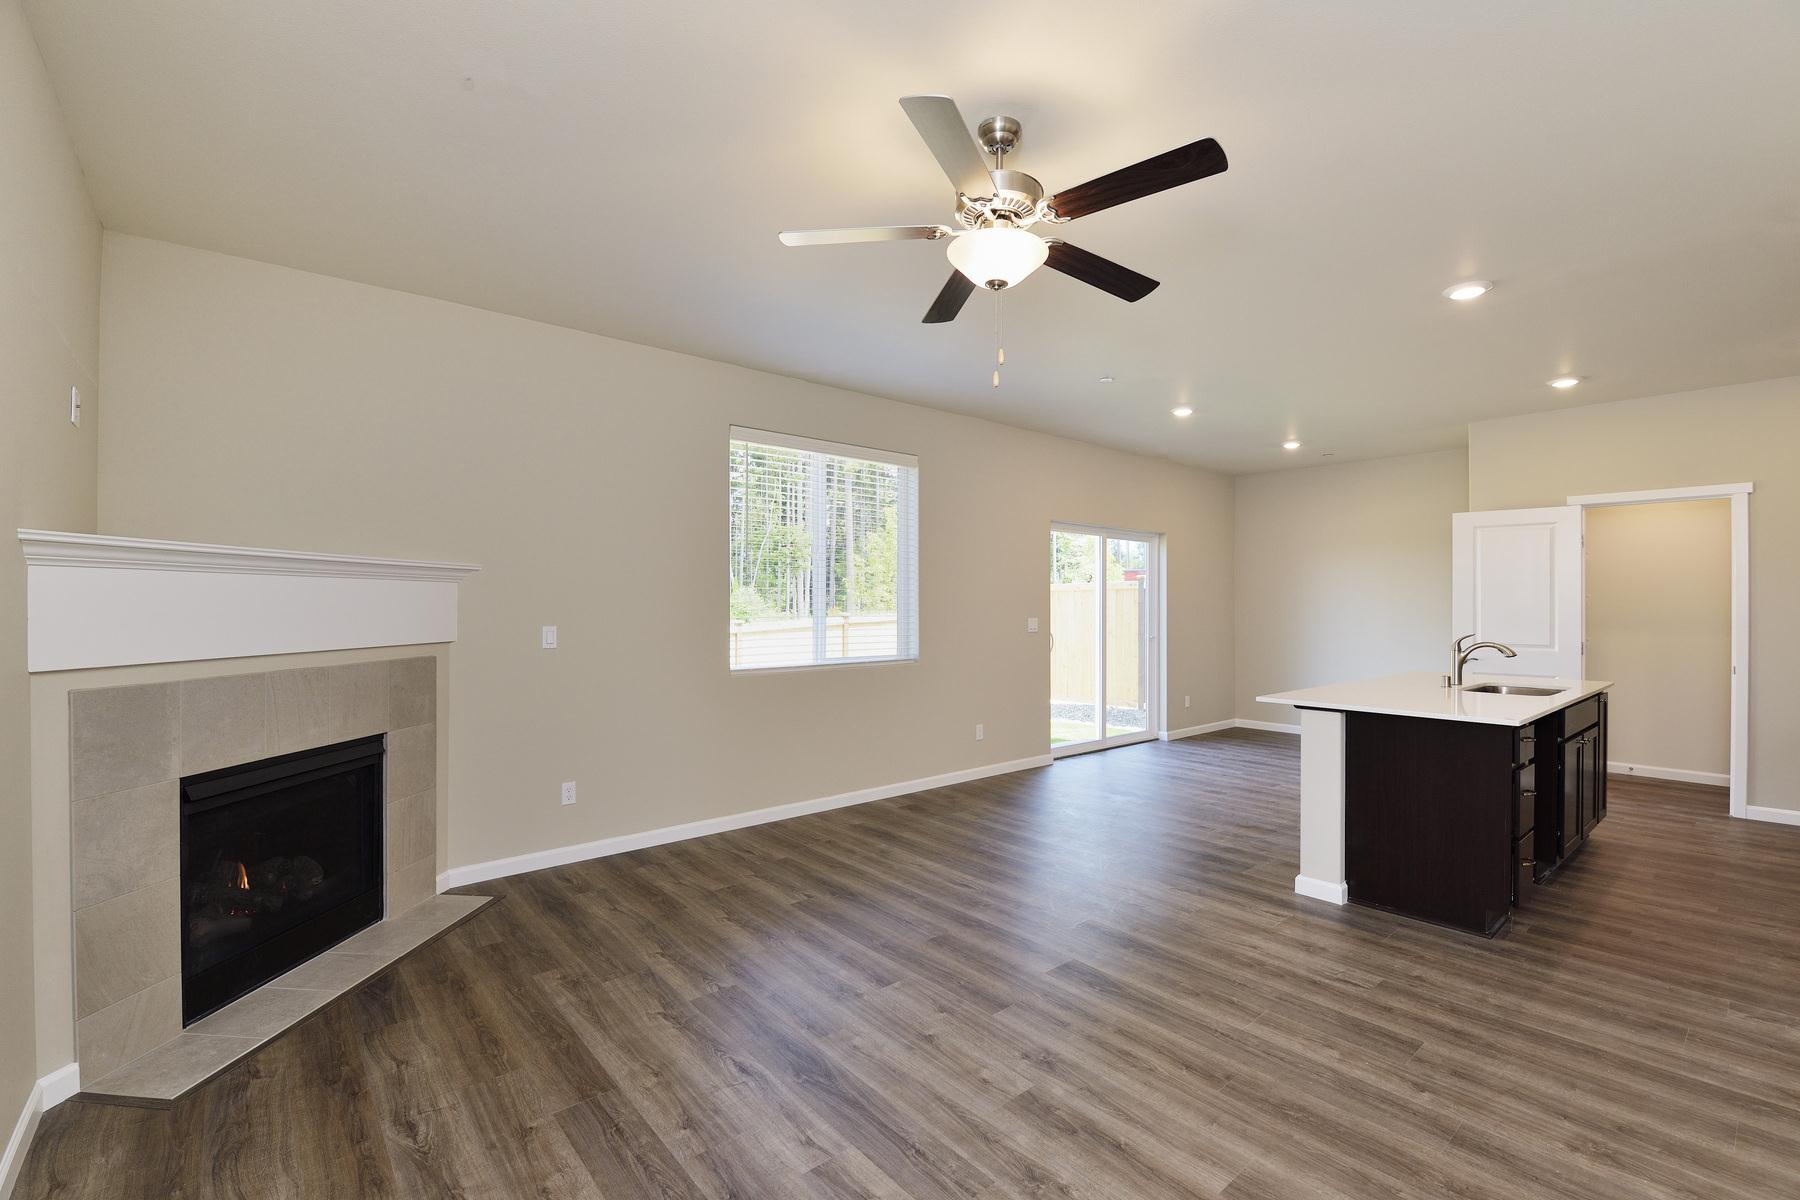 The Hawthorn with CompleteHome Plus package by LGI Homes:LGI Homes at Bay Vista